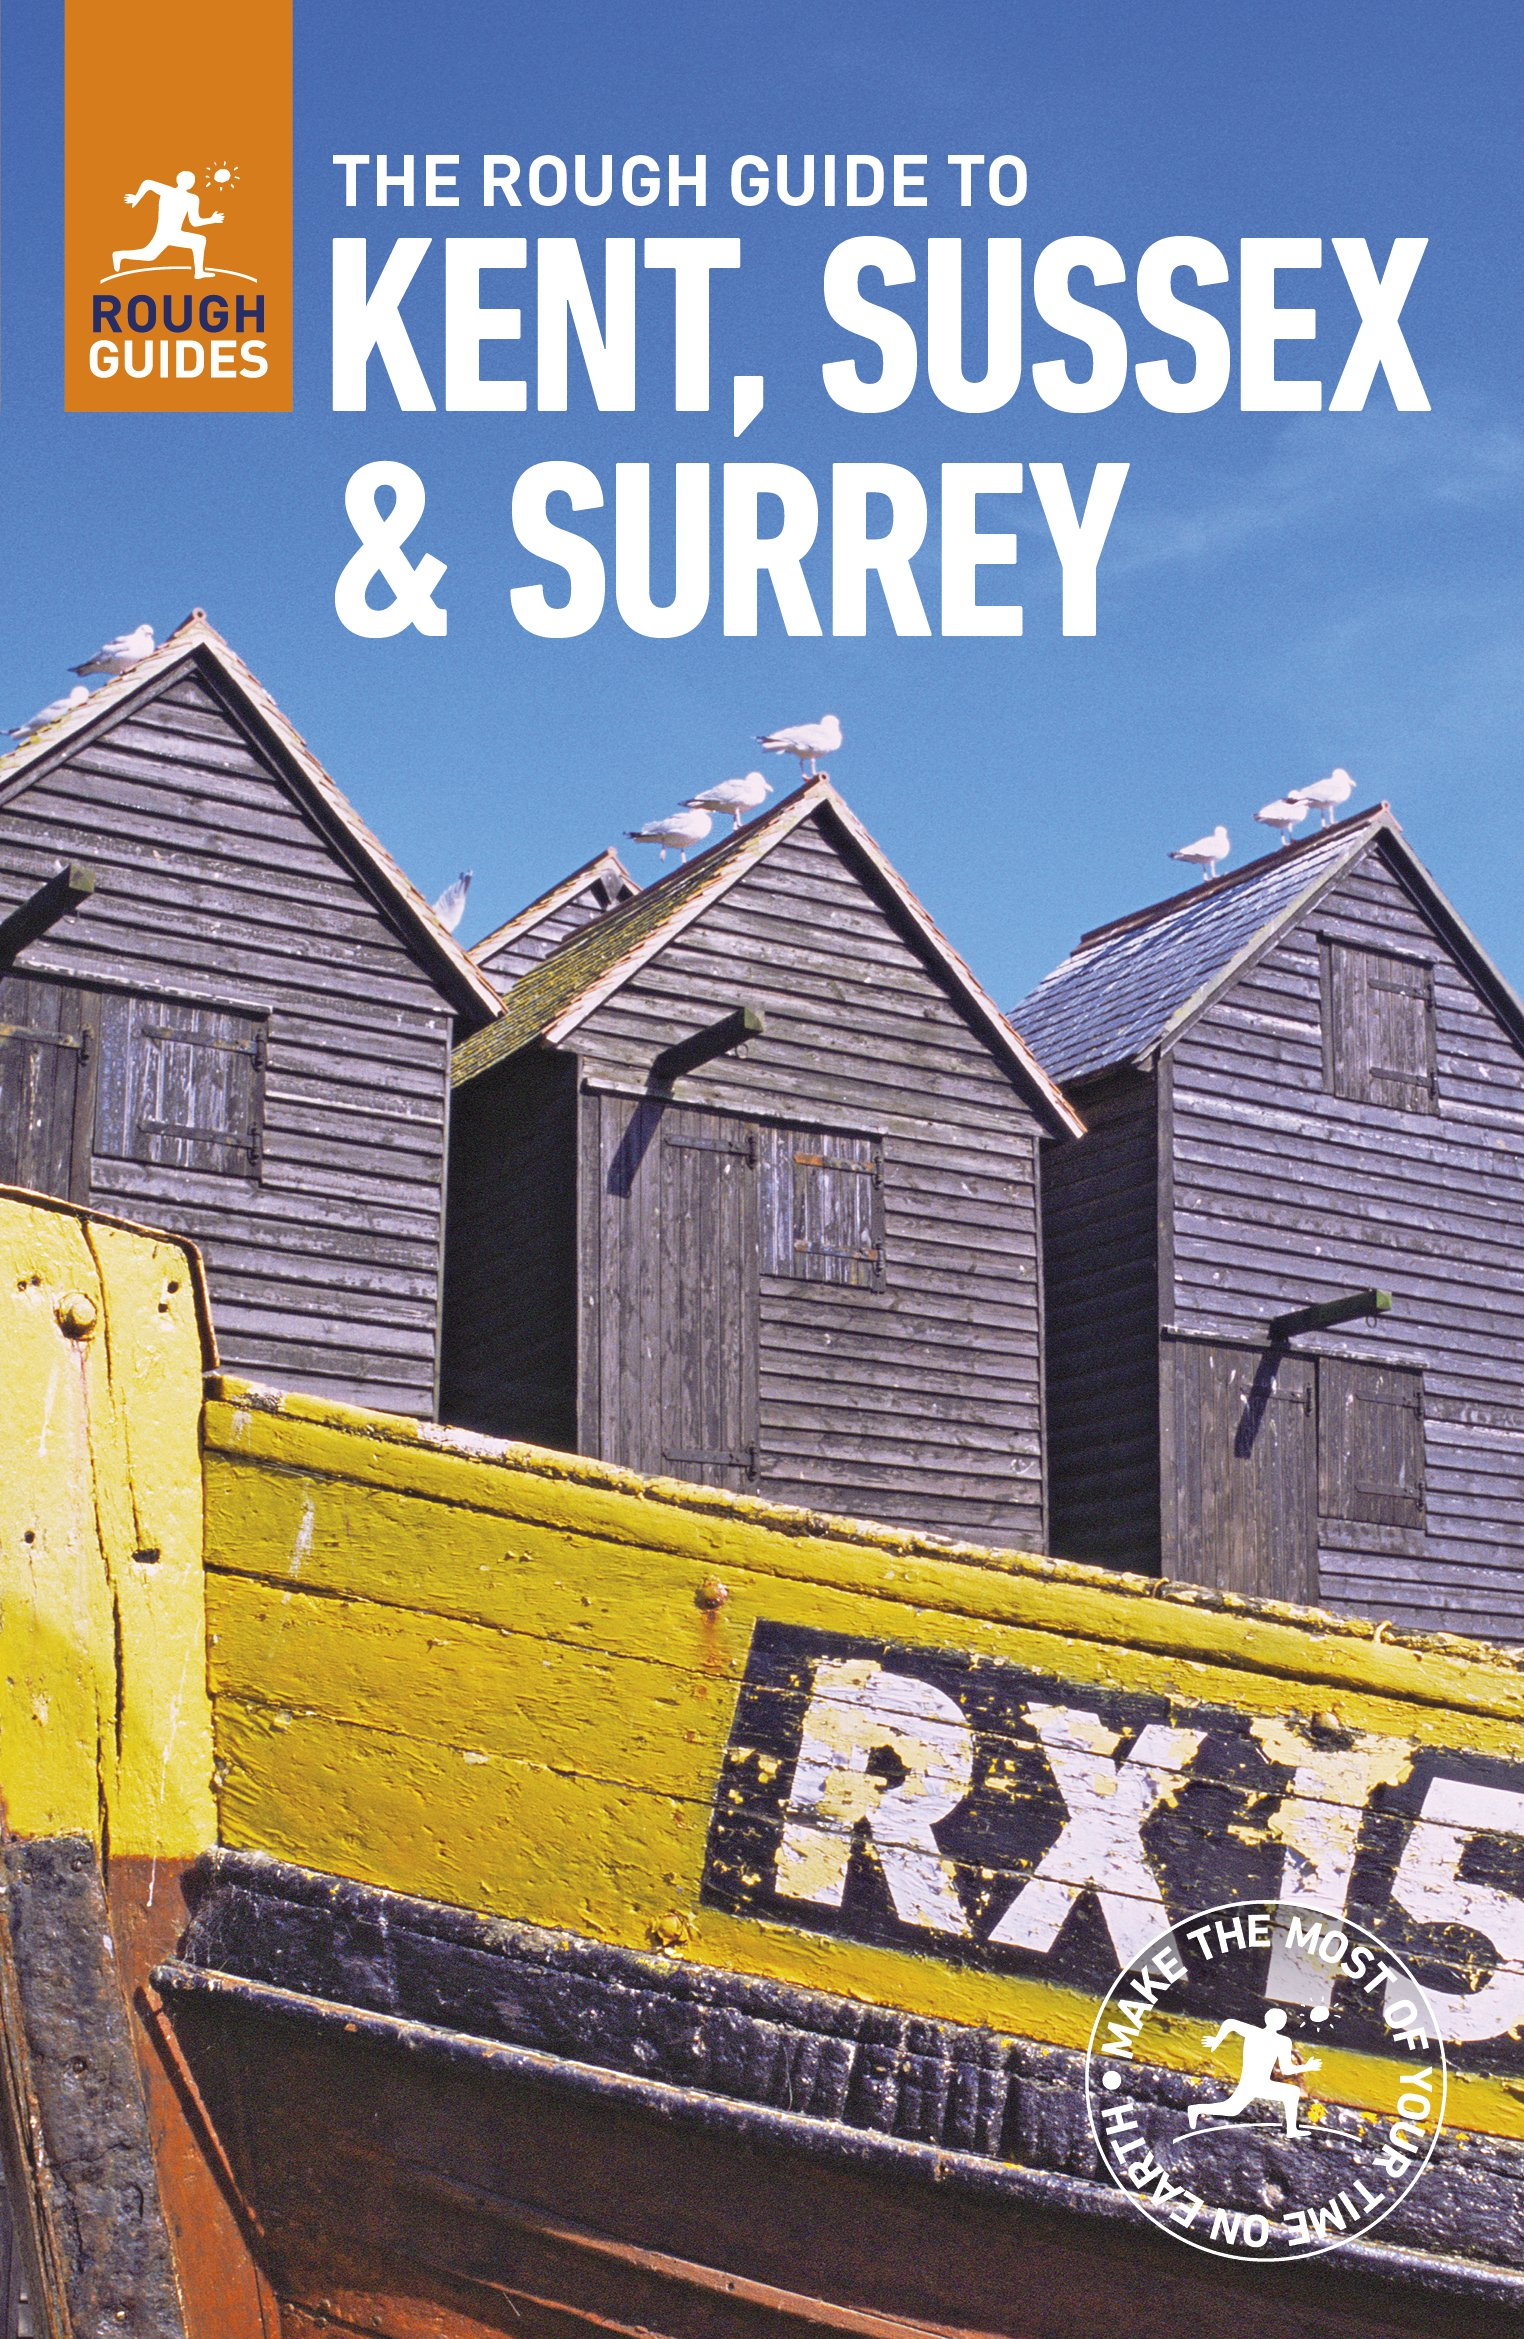 The Rough Guide to Kent, Sussex and Surrey (Rough Guides) ebook